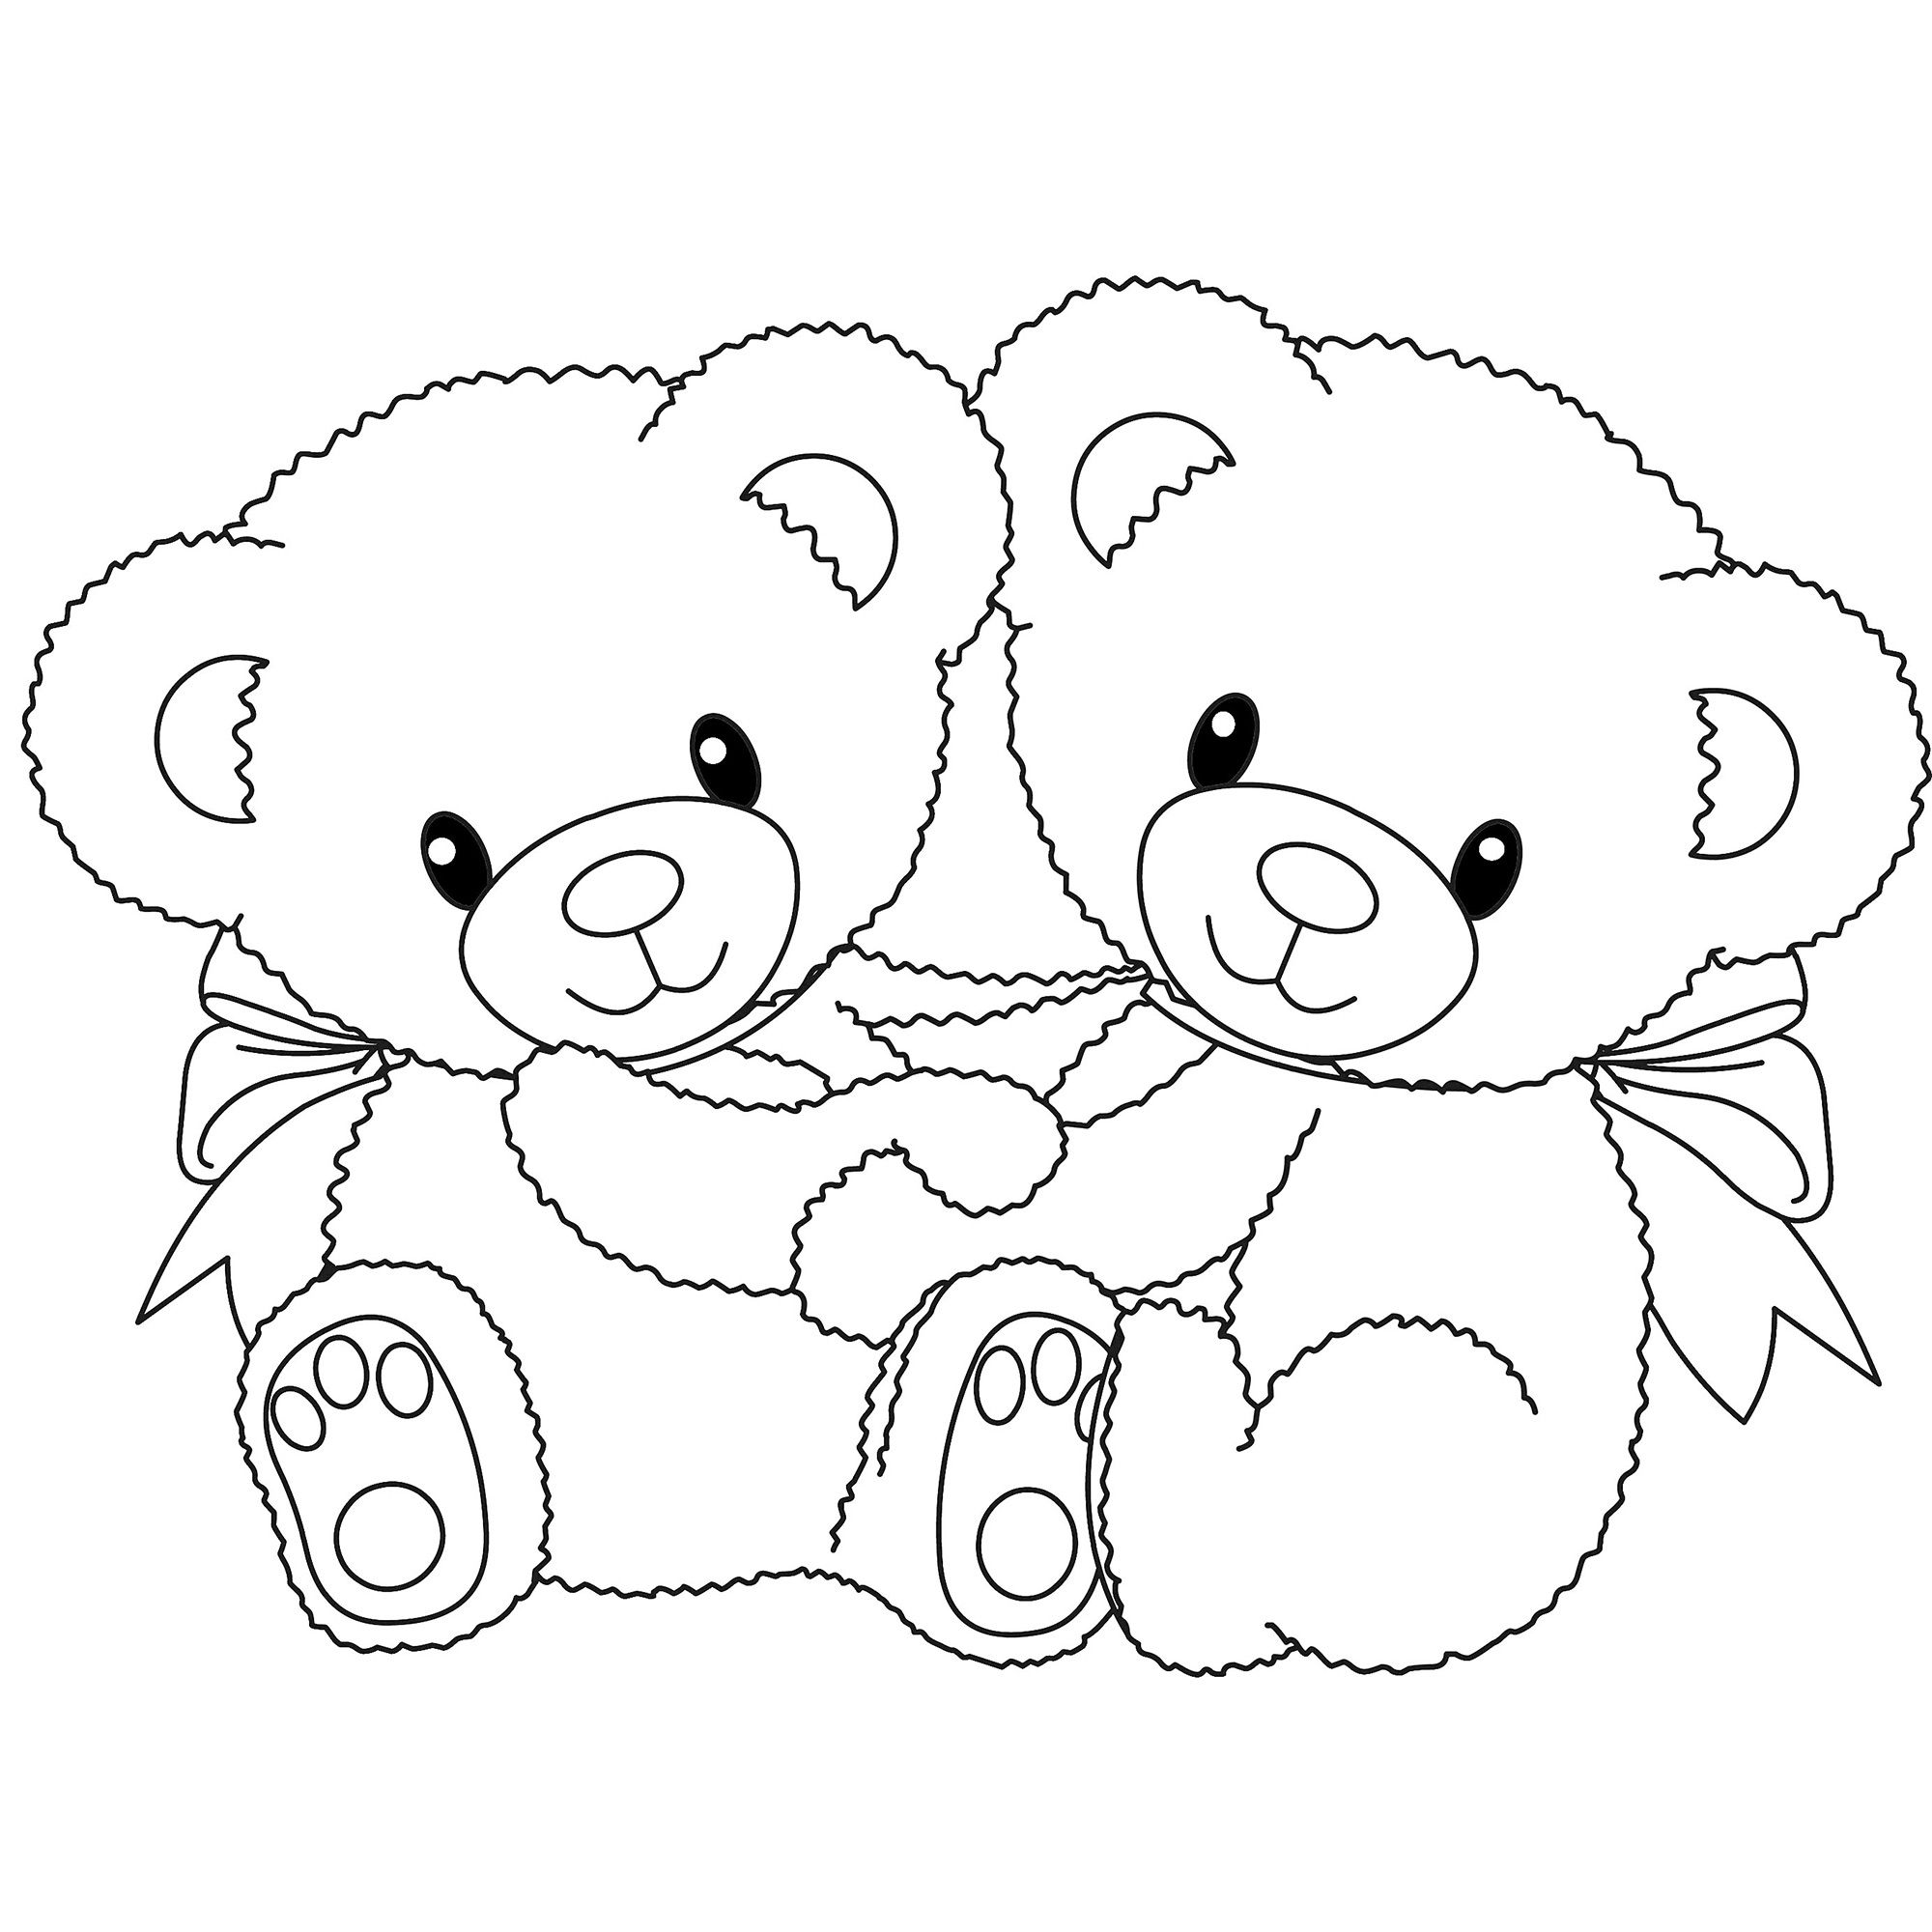 Teddy Bear Coloring Pages Free Printable Coloring Pages Teddy Bear Coloring Pages Bear Coloring Pages Polar Bear Coloring Page